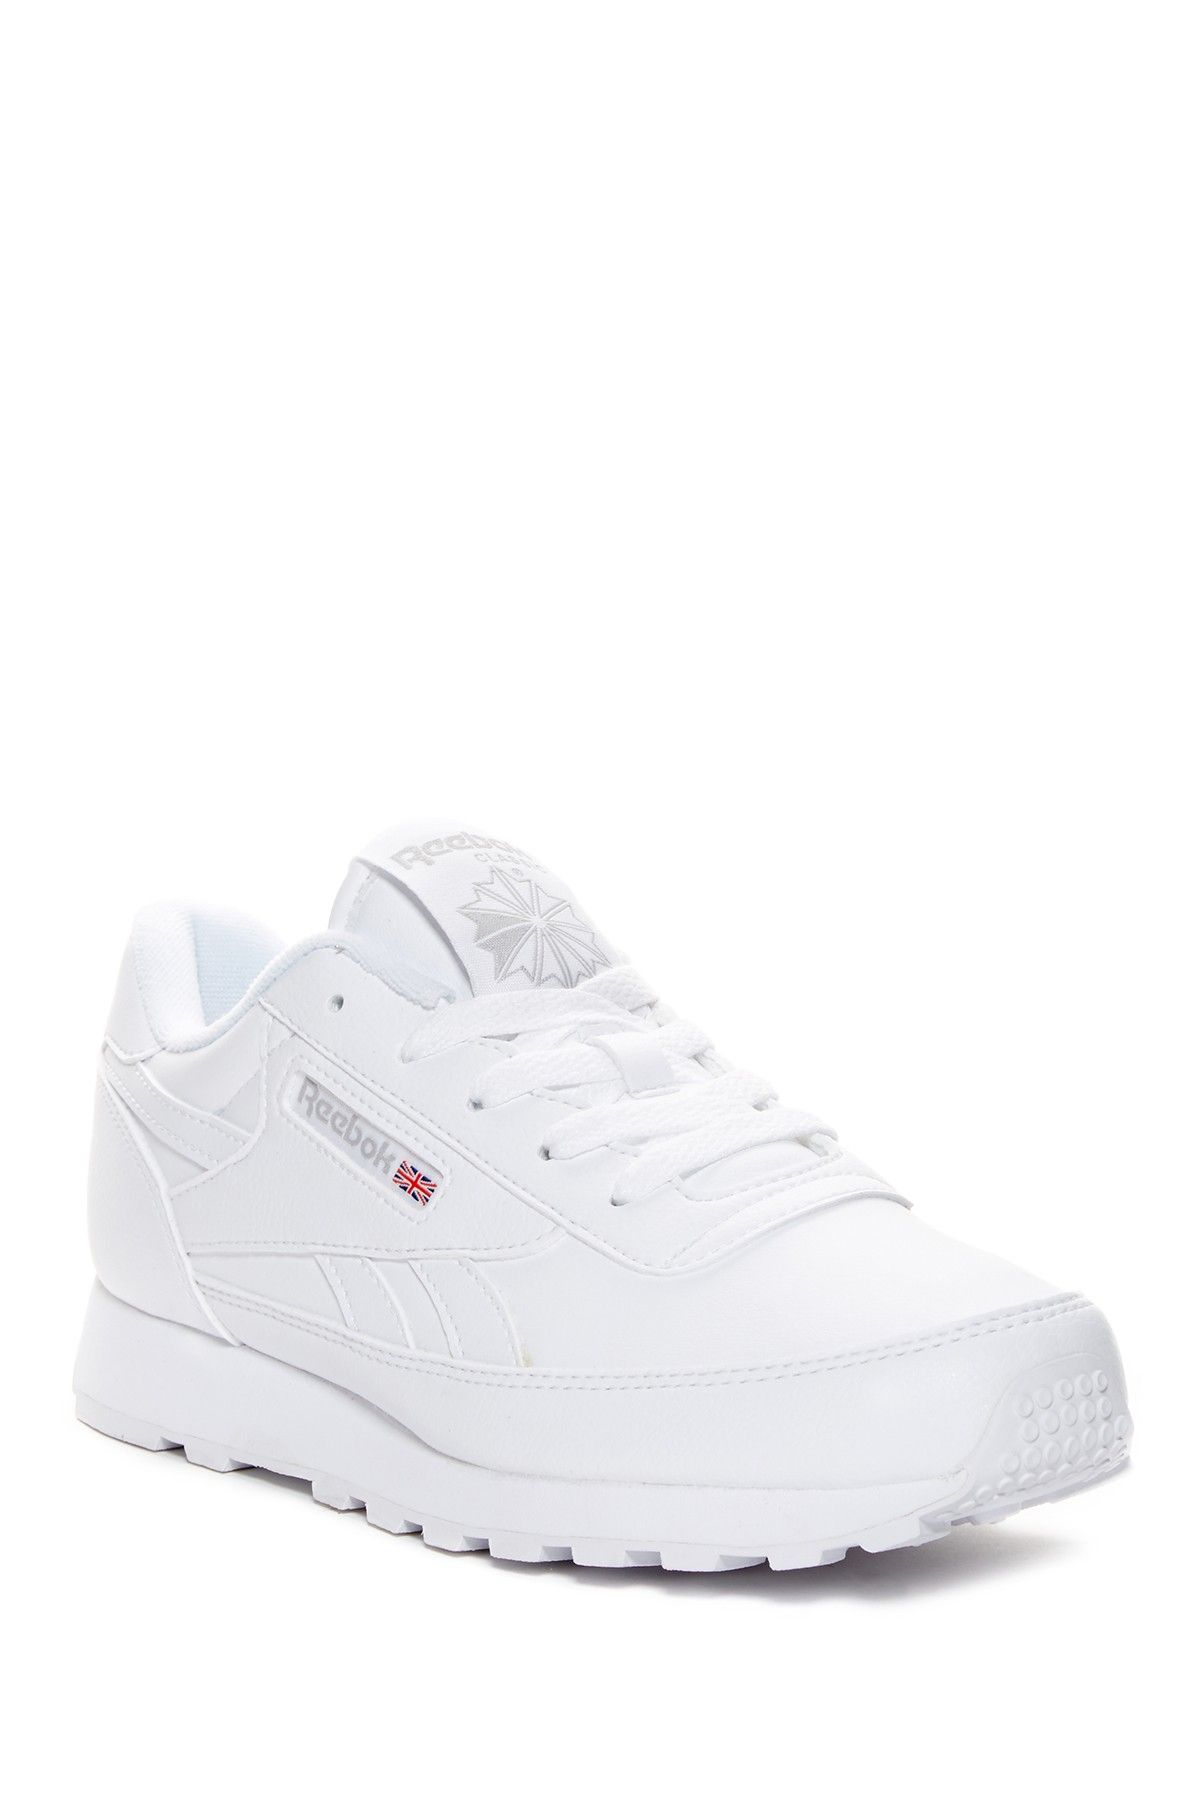 fcfdb2c16f6b3 Reebok - Classic Renaissance Sneaker is now 27-28% off. Free Shipping on  orders over  100.